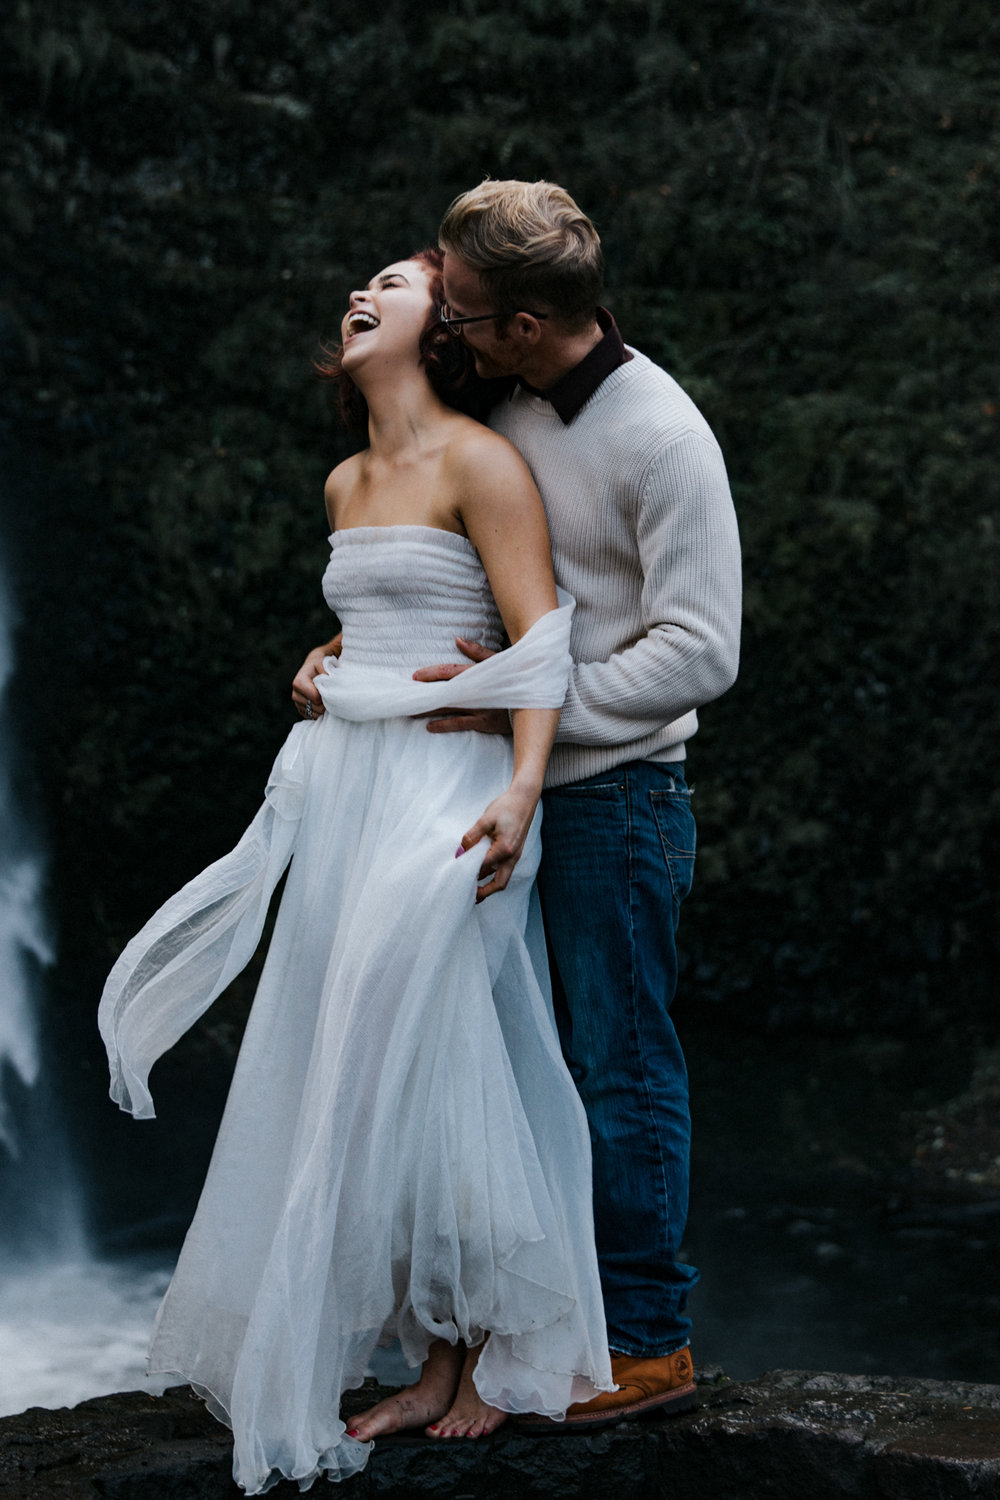 Couple laughing together, Adventurous Outdoor + Waterfall Couples Session | Croative Photography